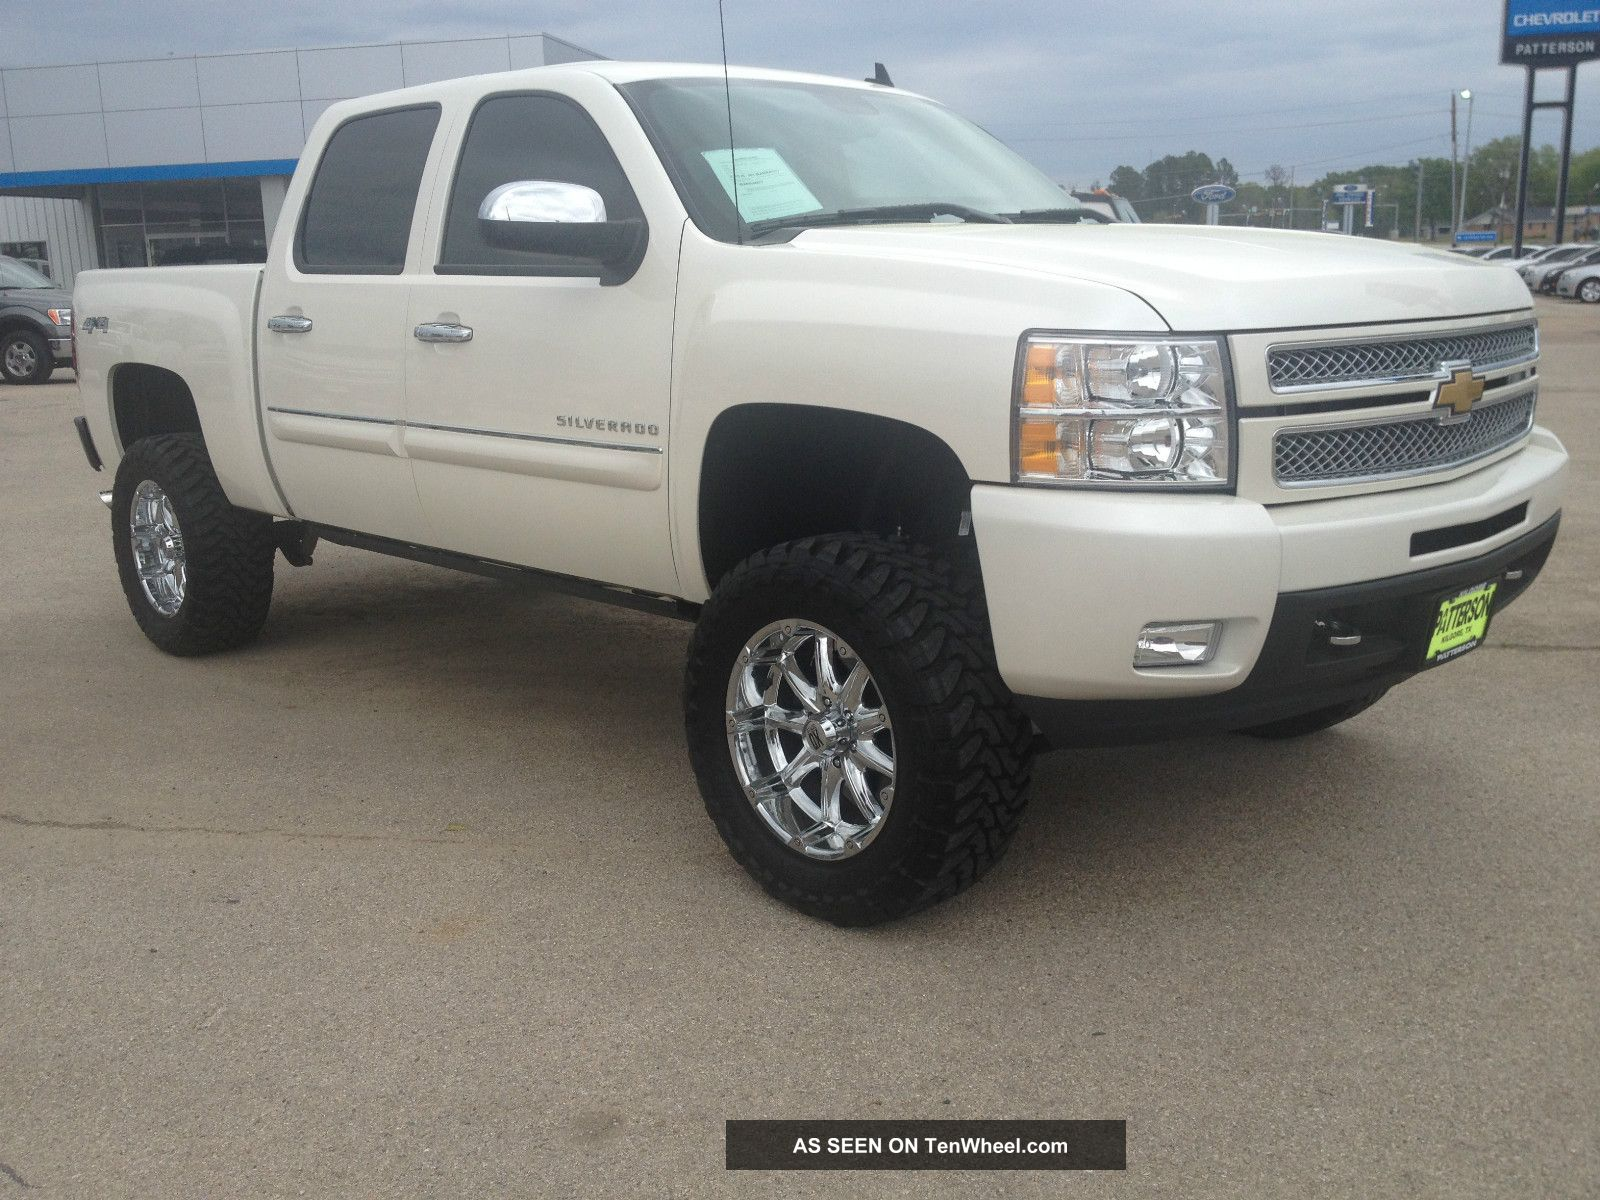 2012 chevrolet silverado 1500 lt crew cab pickup 4 door 5 3l. Black Bedroom Furniture Sets. Home Design Ideas